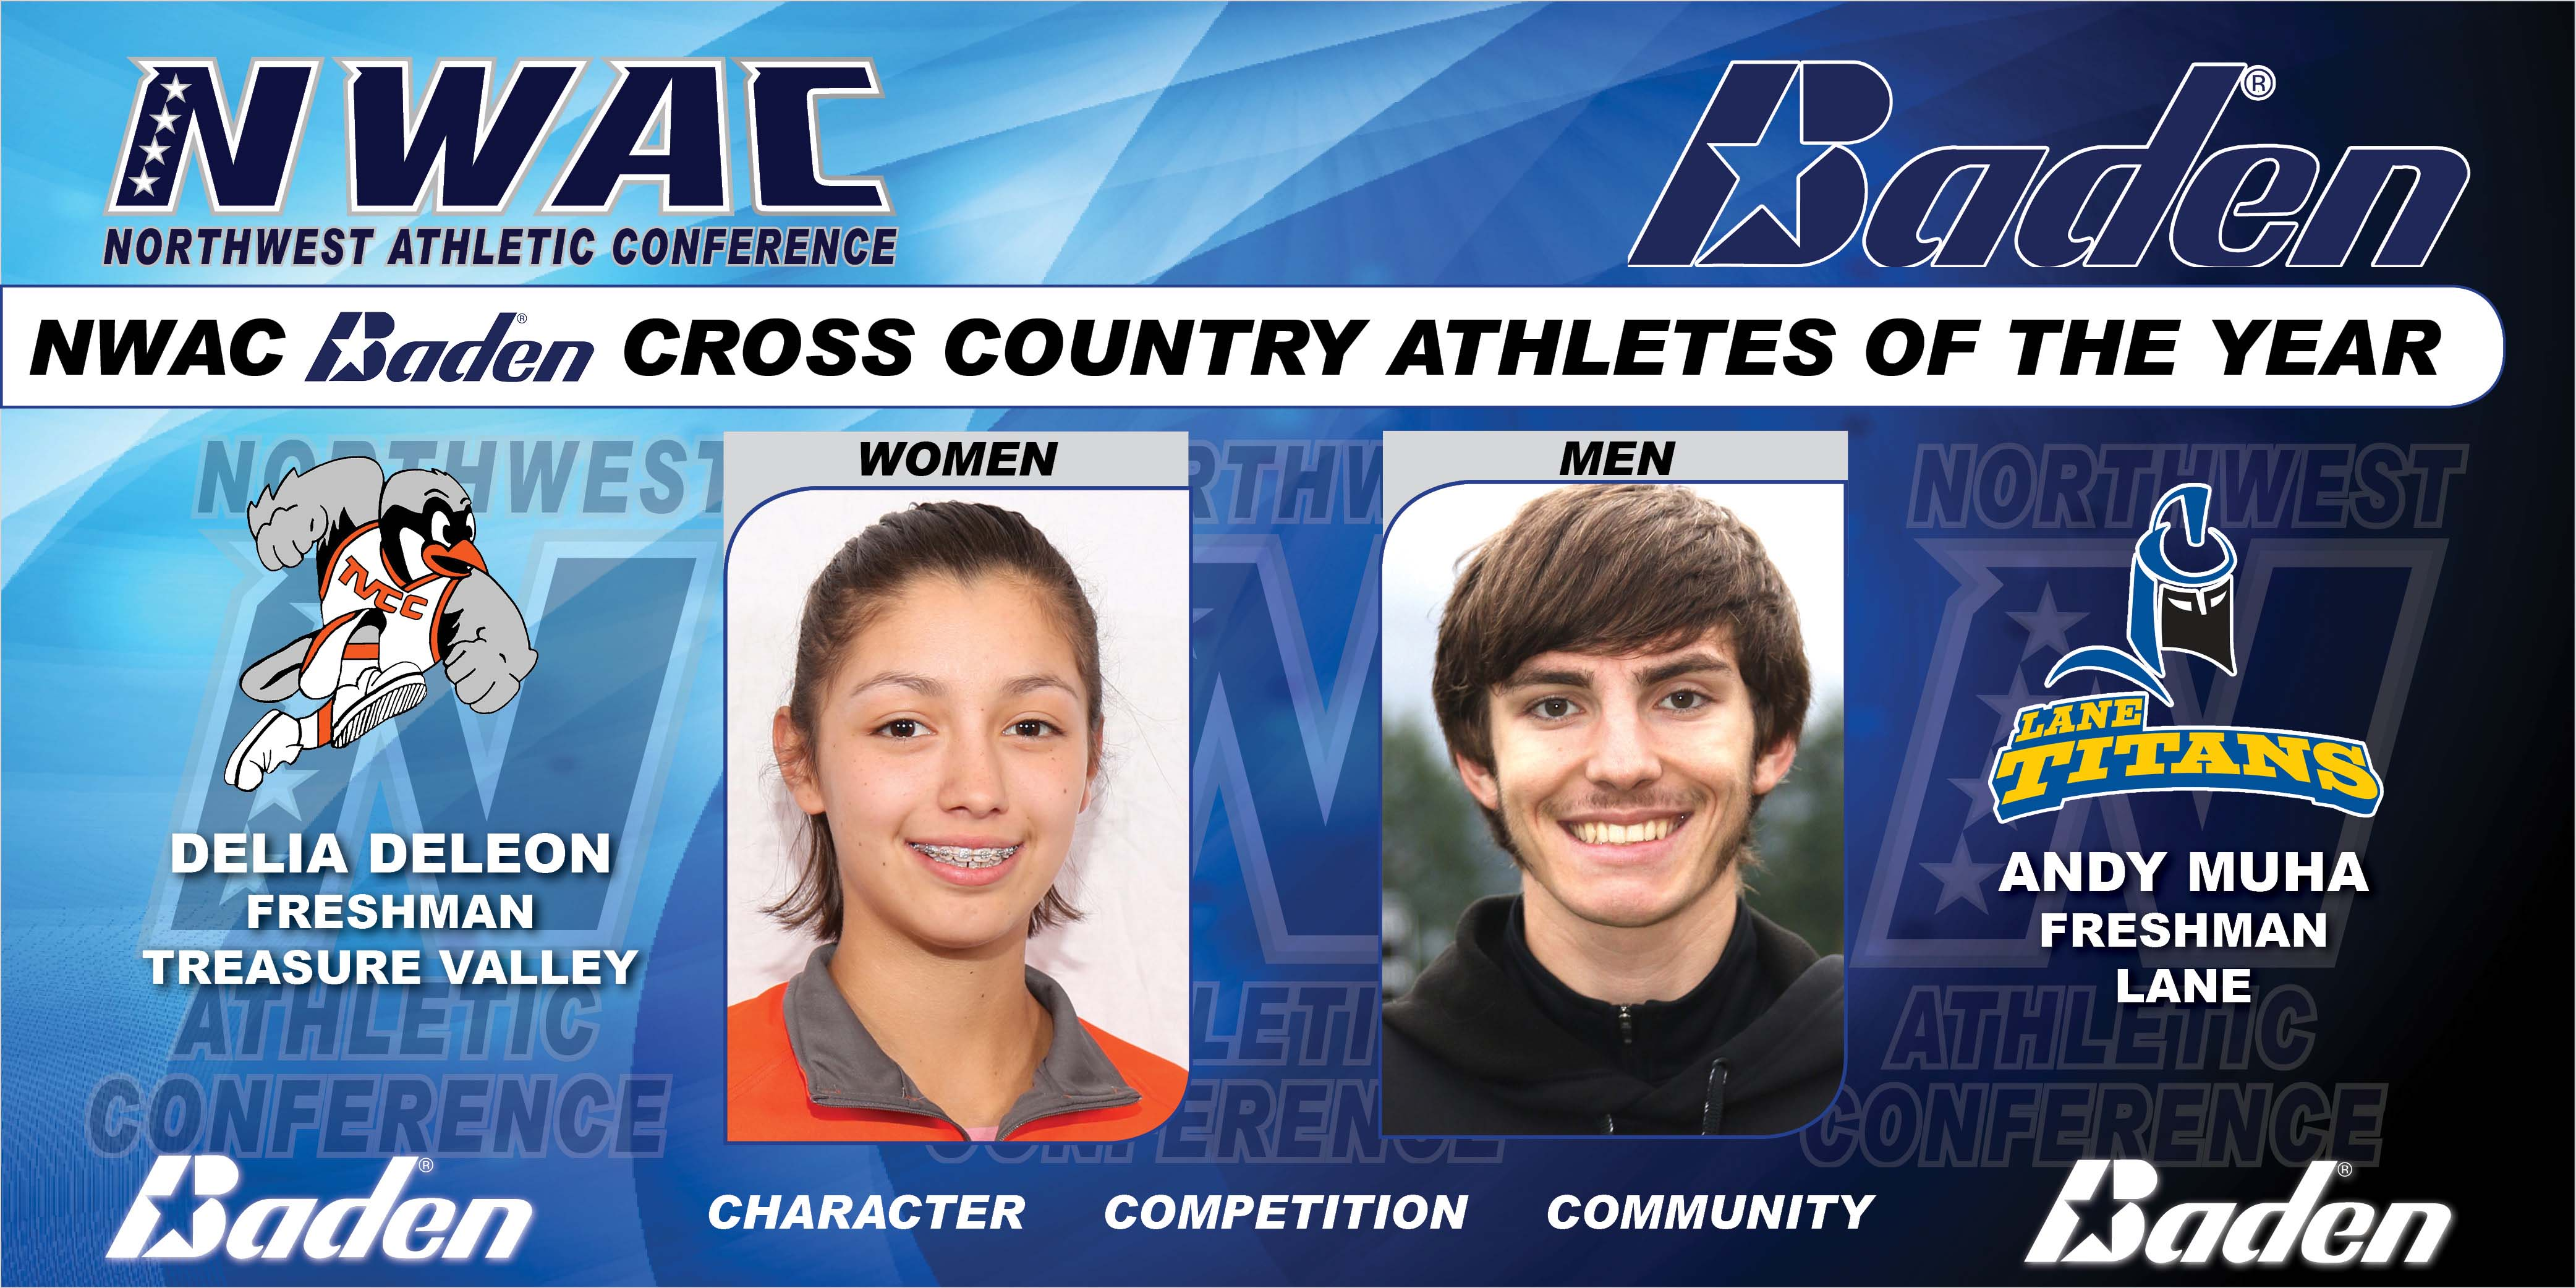 Delia DeLeon and Andy Muha Baden Soccer Cross Country Athletes of the Year Graphic